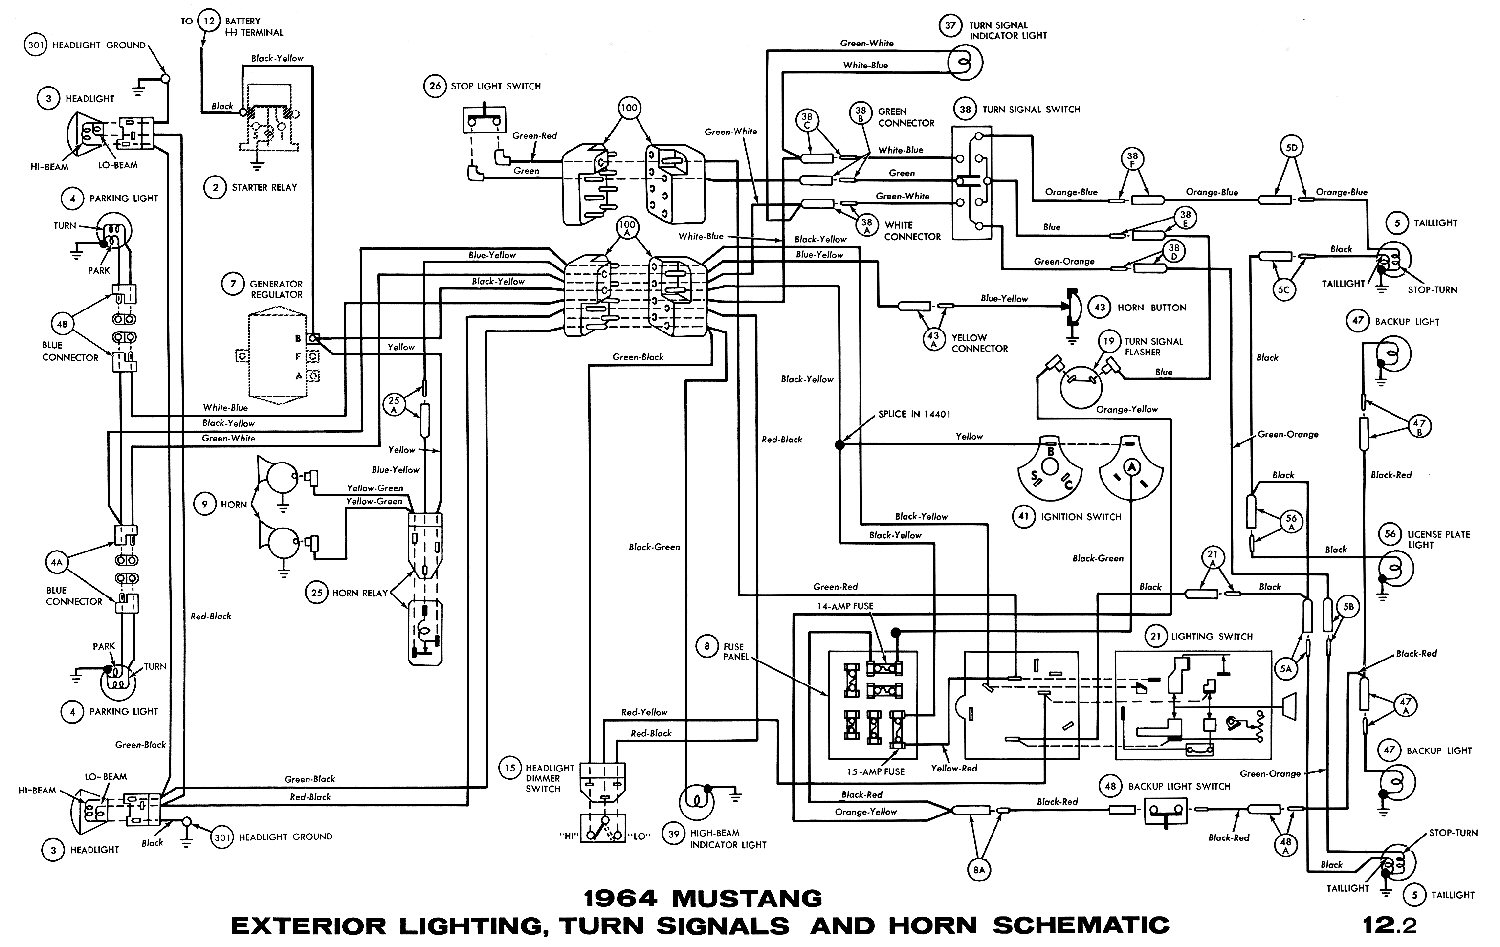 1964i 1964 mustang wiring diagrams average joe restoration 1969 mustang wiring diagram at honlapkeszites.co